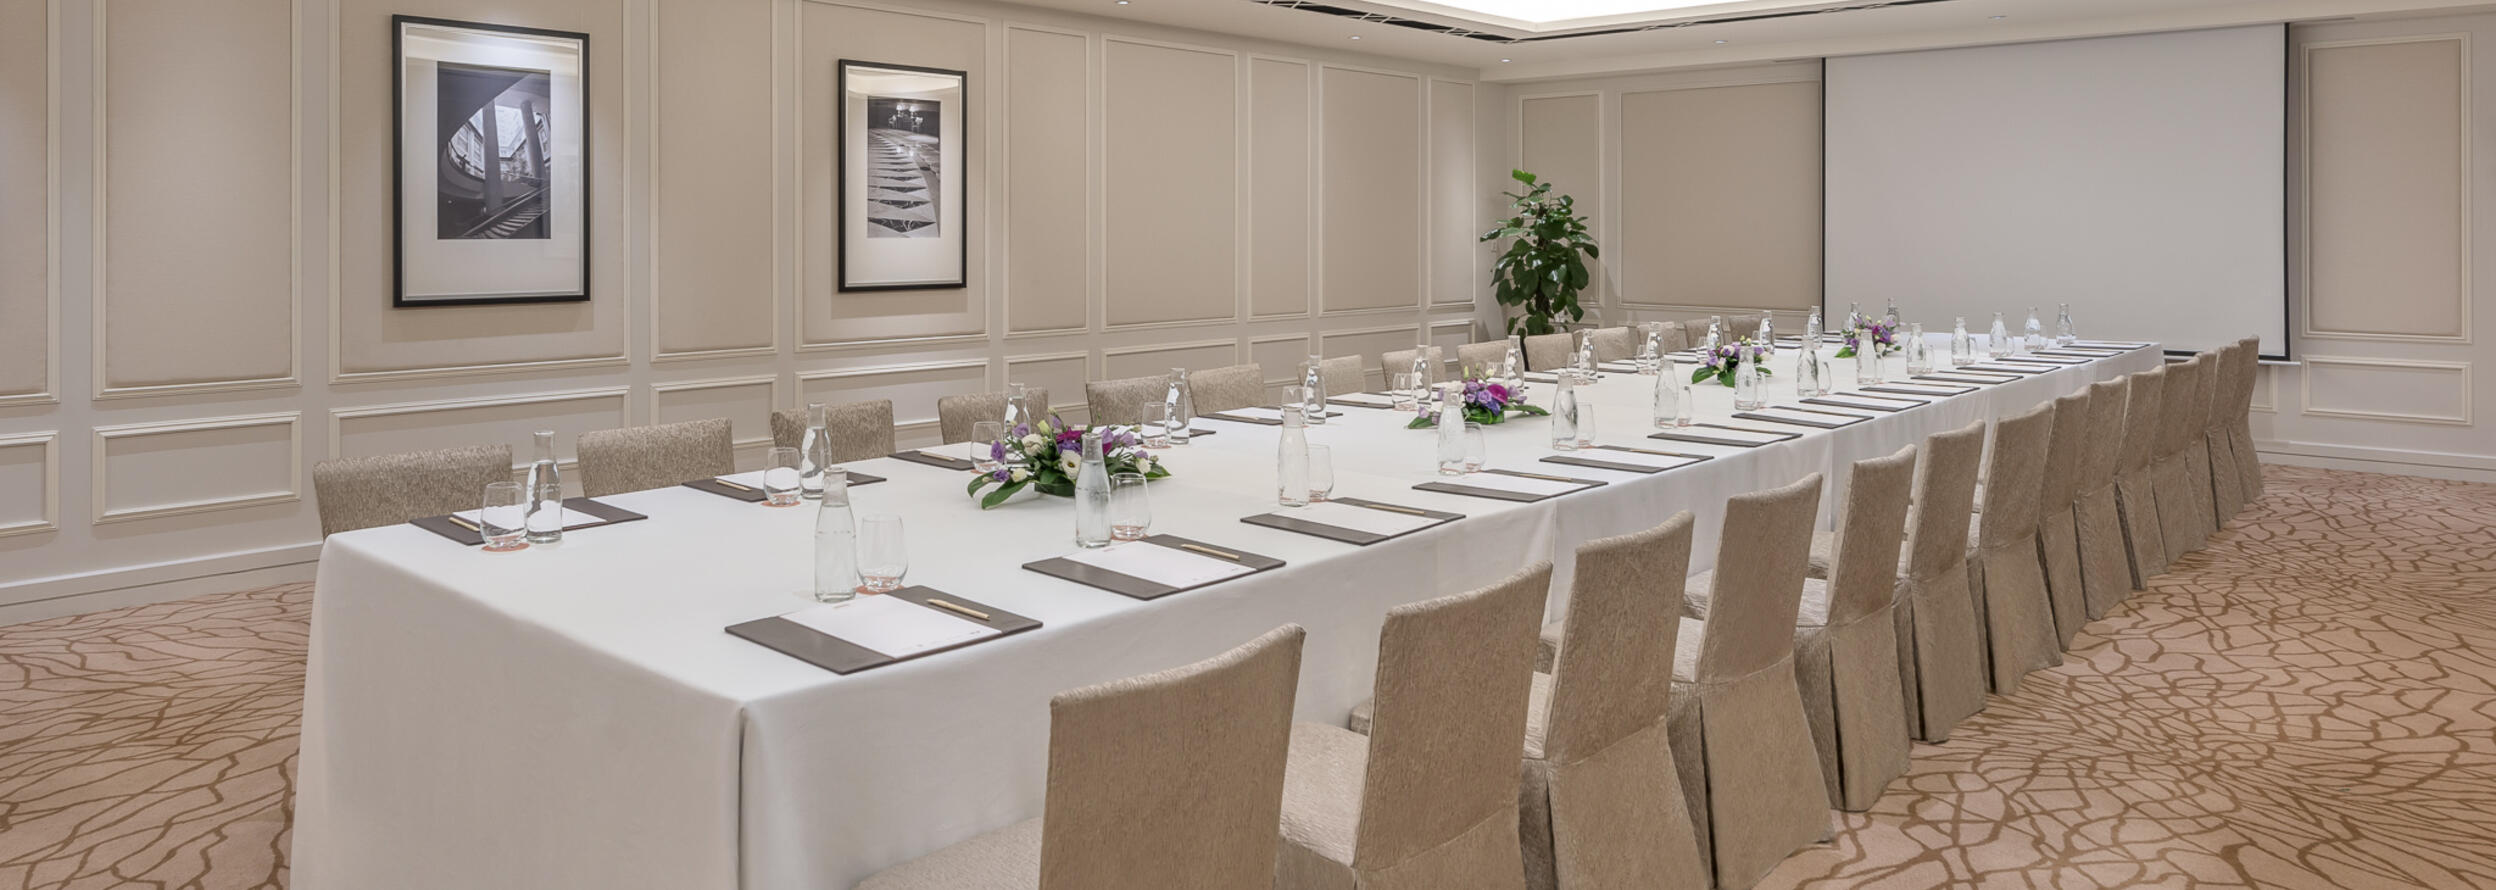 The Boardroom at the hotel arranged for a meeting